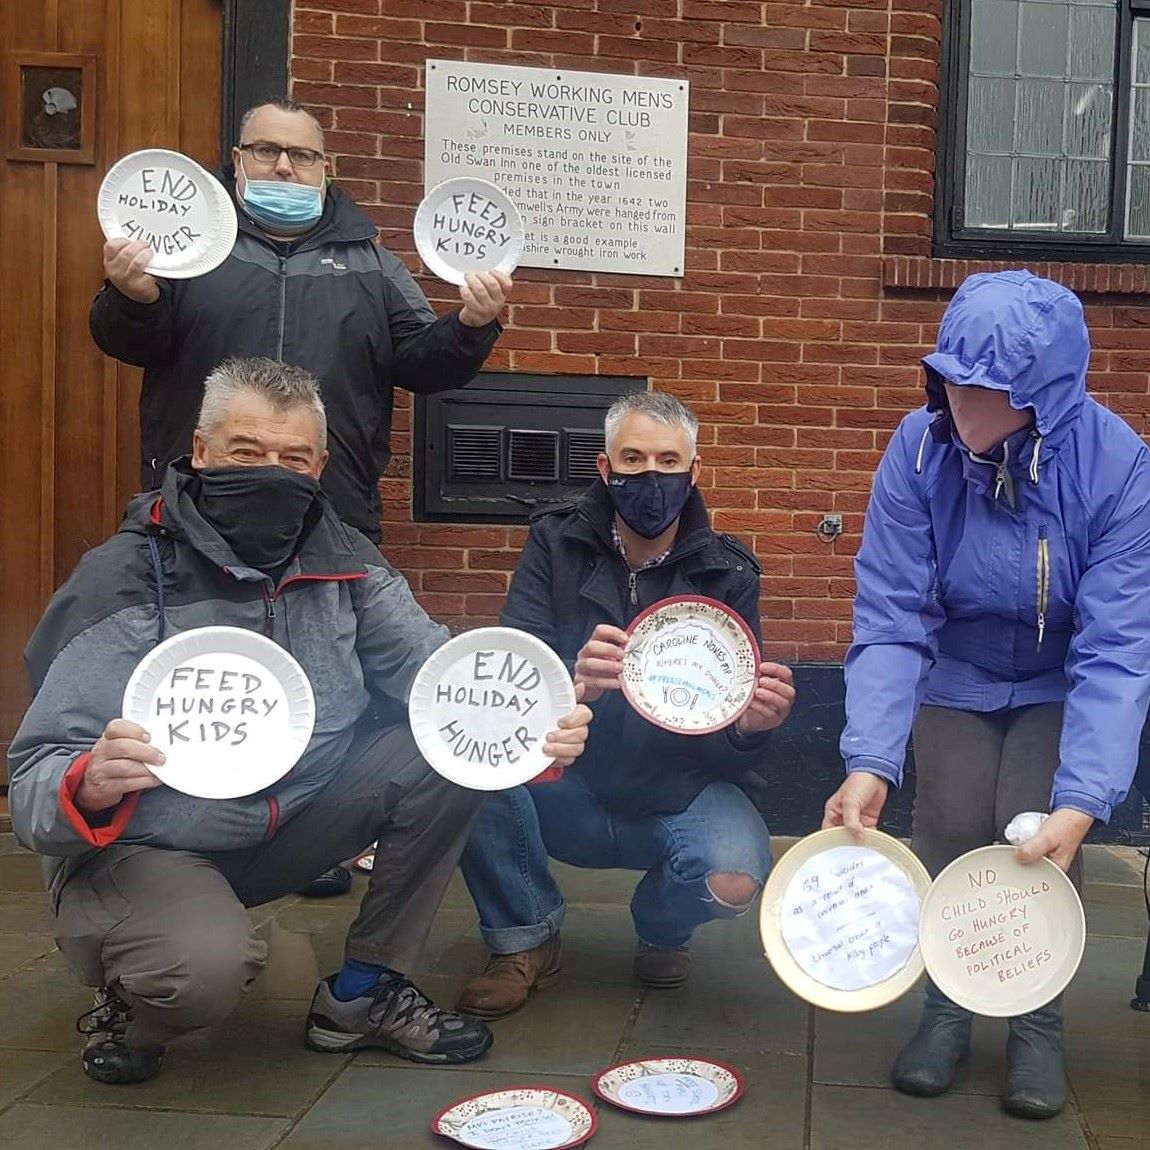 Protest to end 'child holiday hunger' at Romsey Tory MP's office